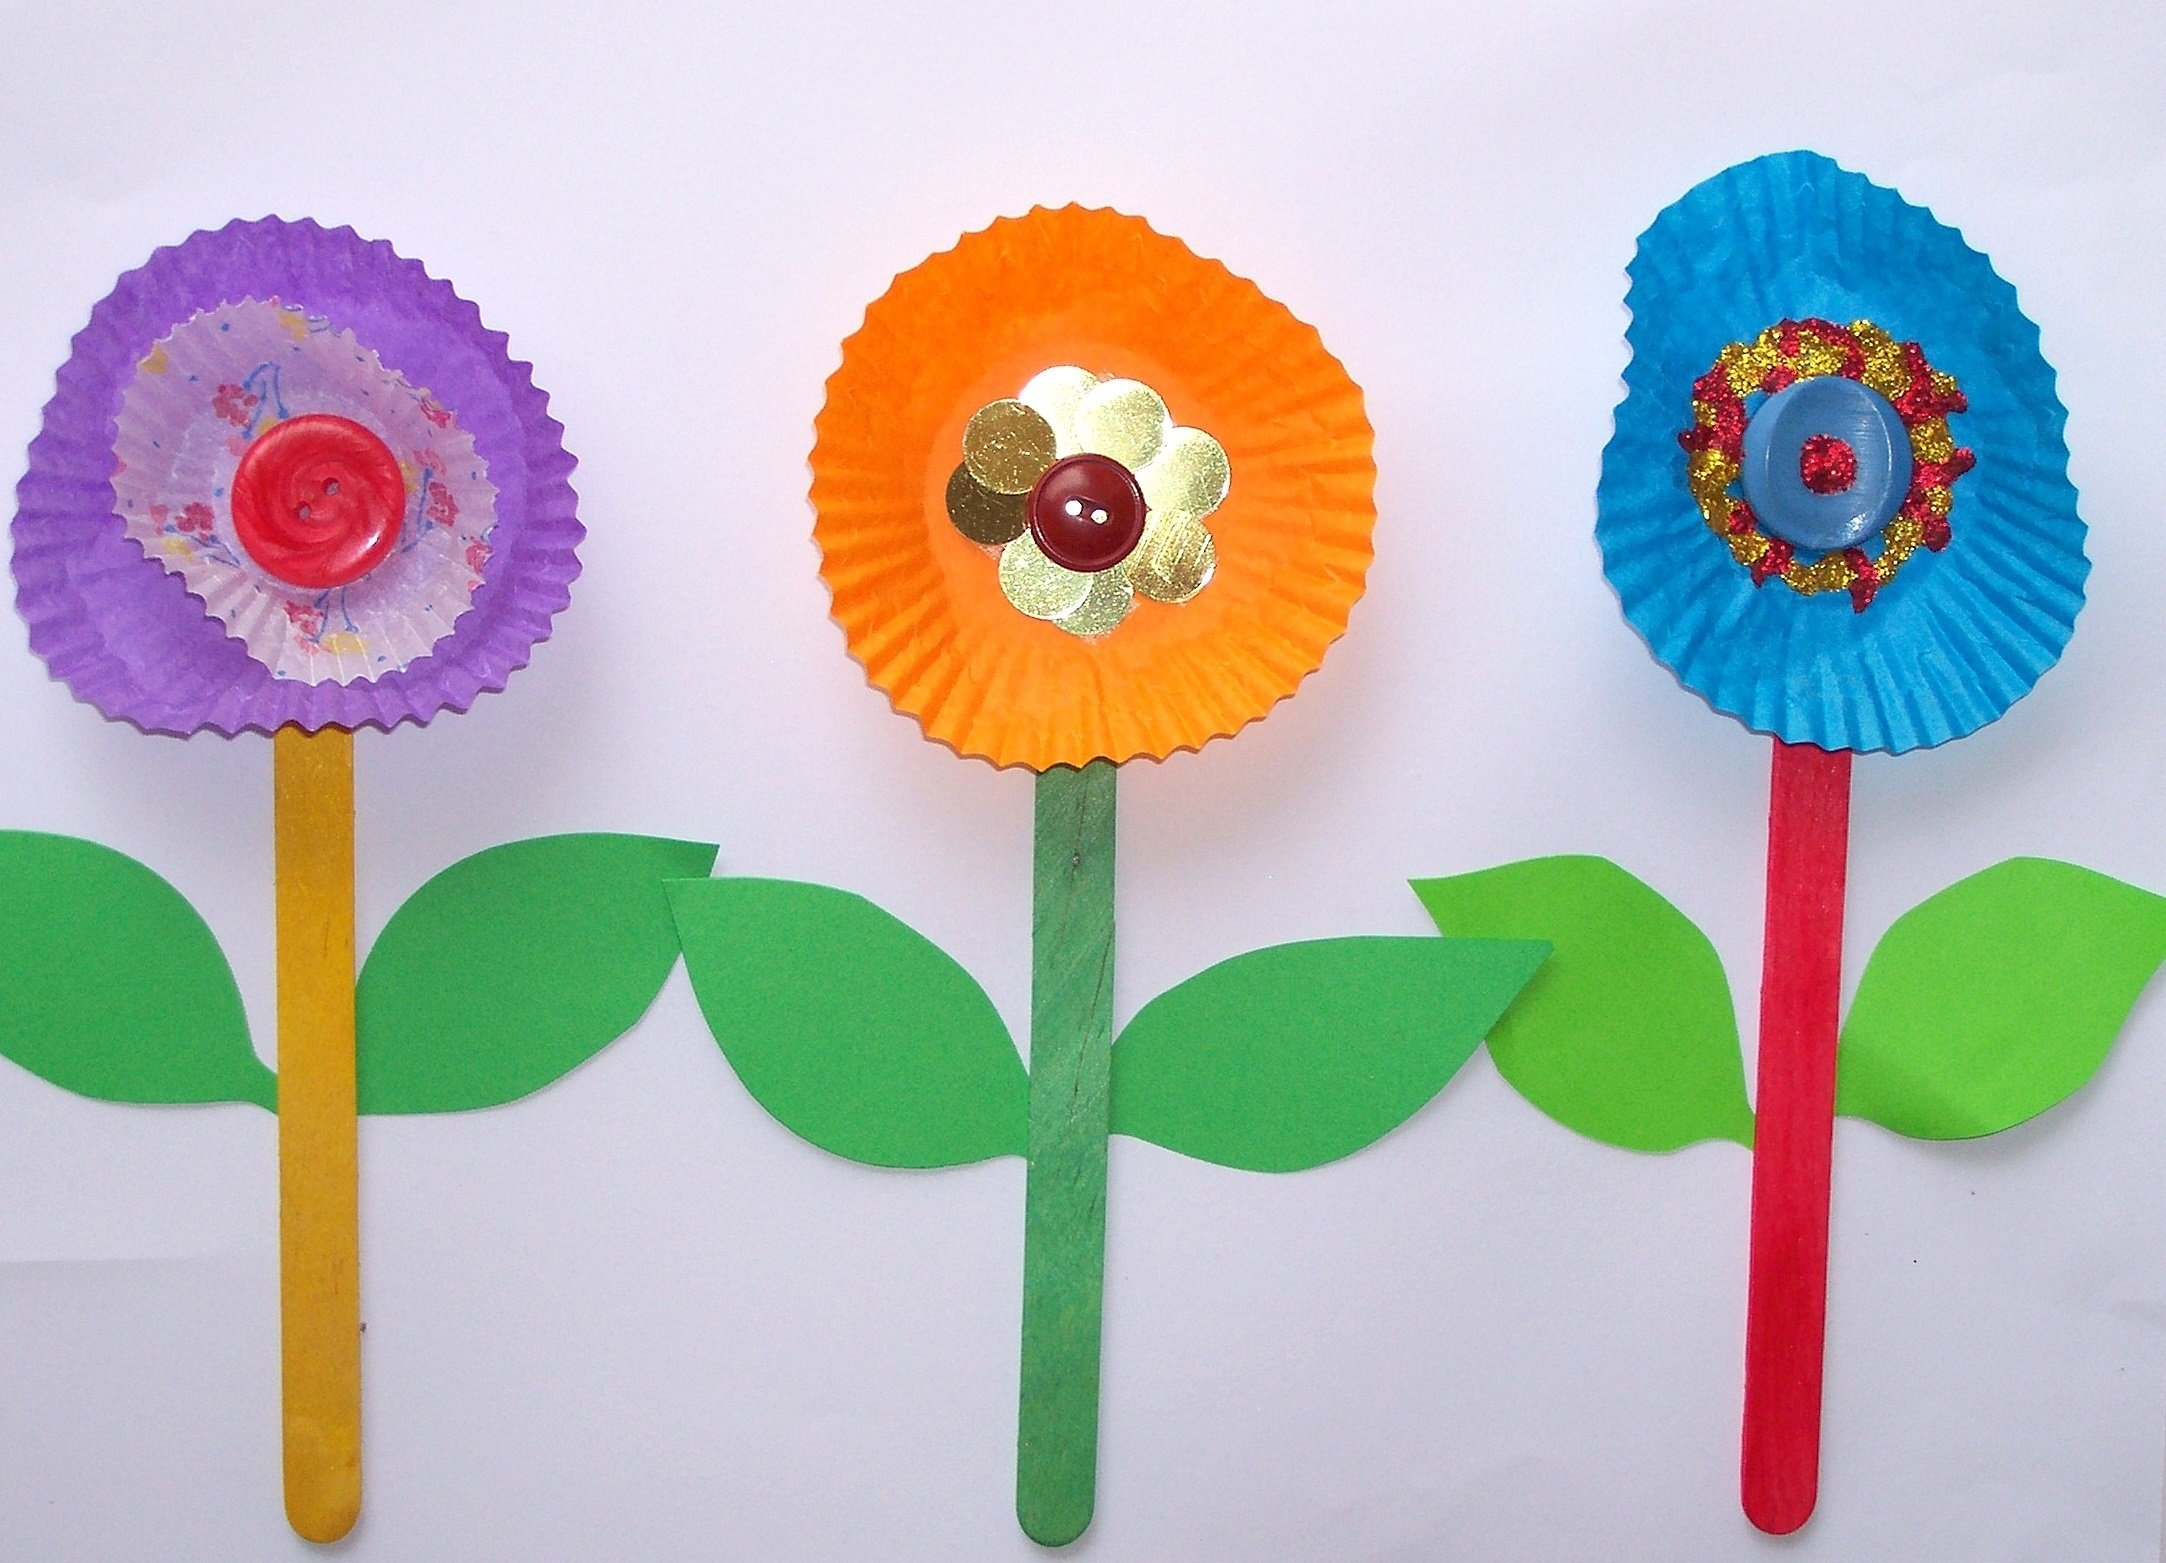 10 Fabulous Spring Craft Ideas For Kids easy spring kids crafts homi craft tierra este 80347 2021